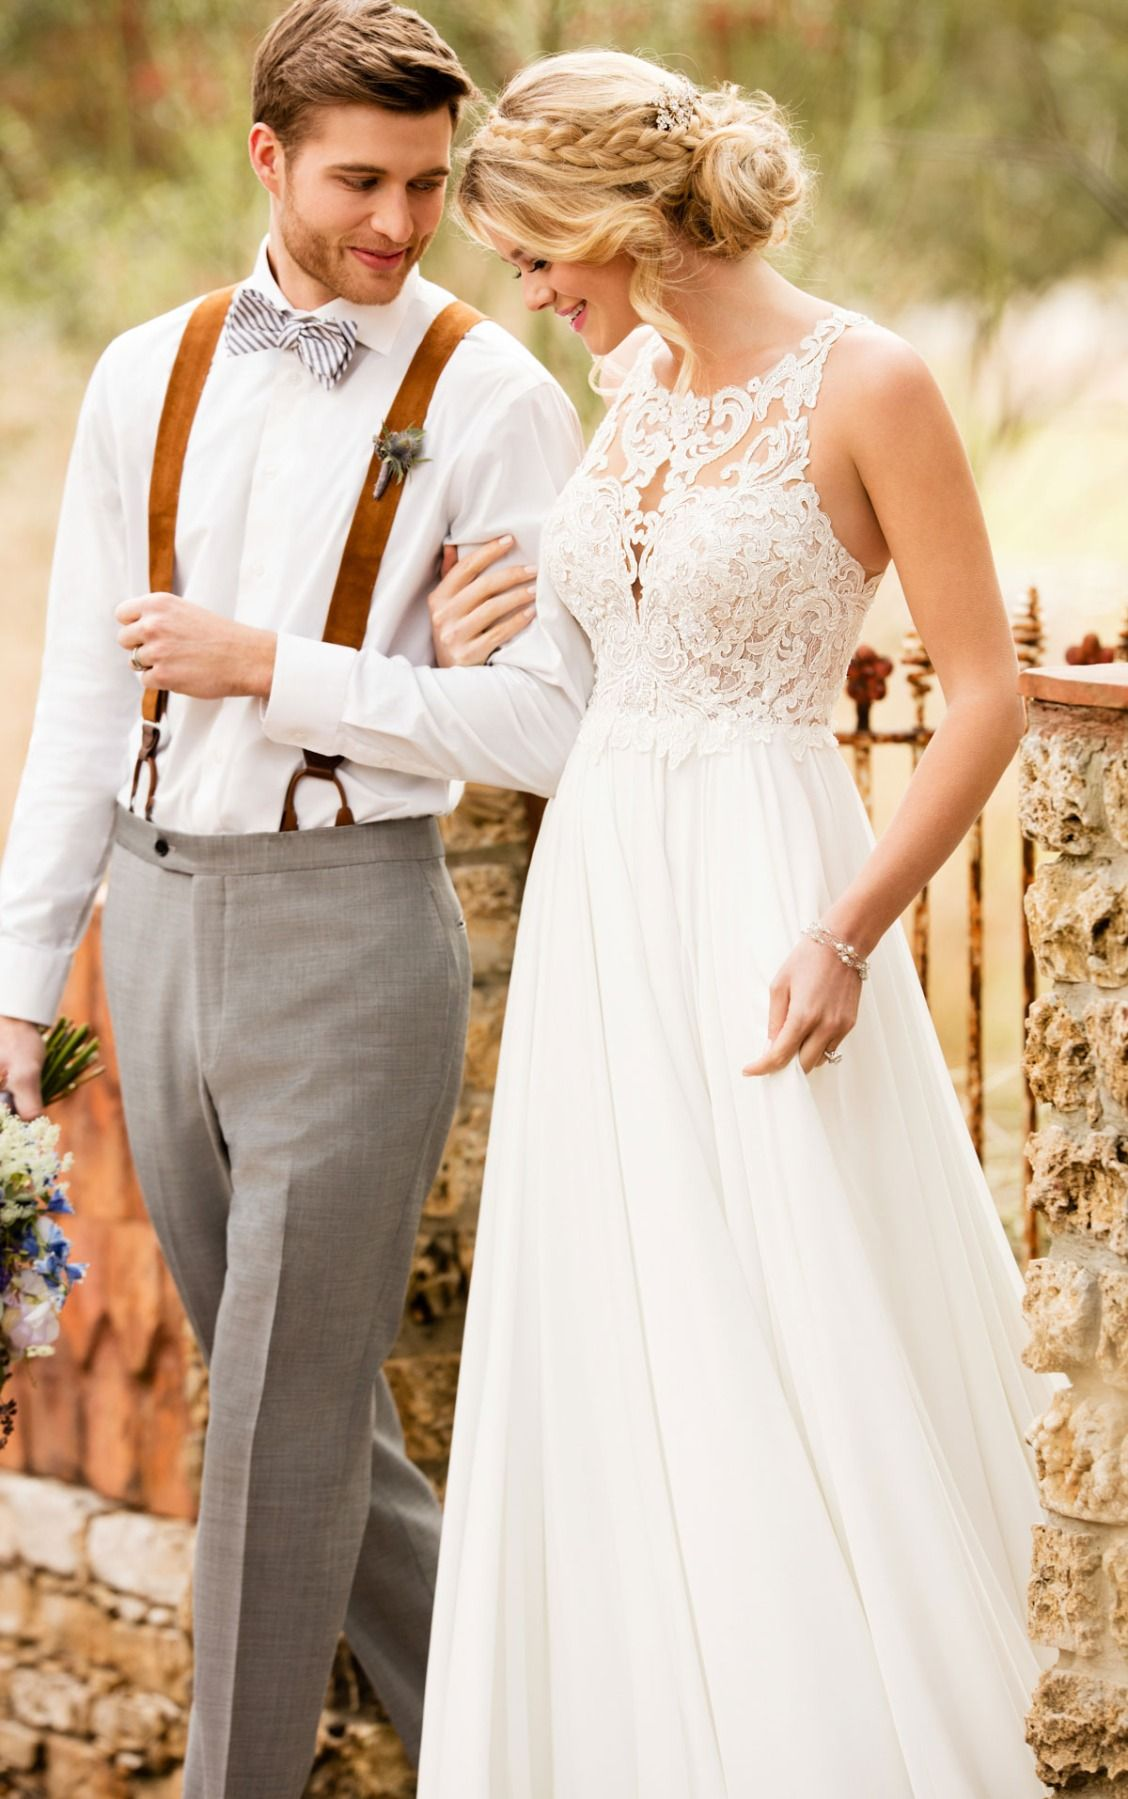 Wedding dresses lj dress pinterest boda vestidos de novia and